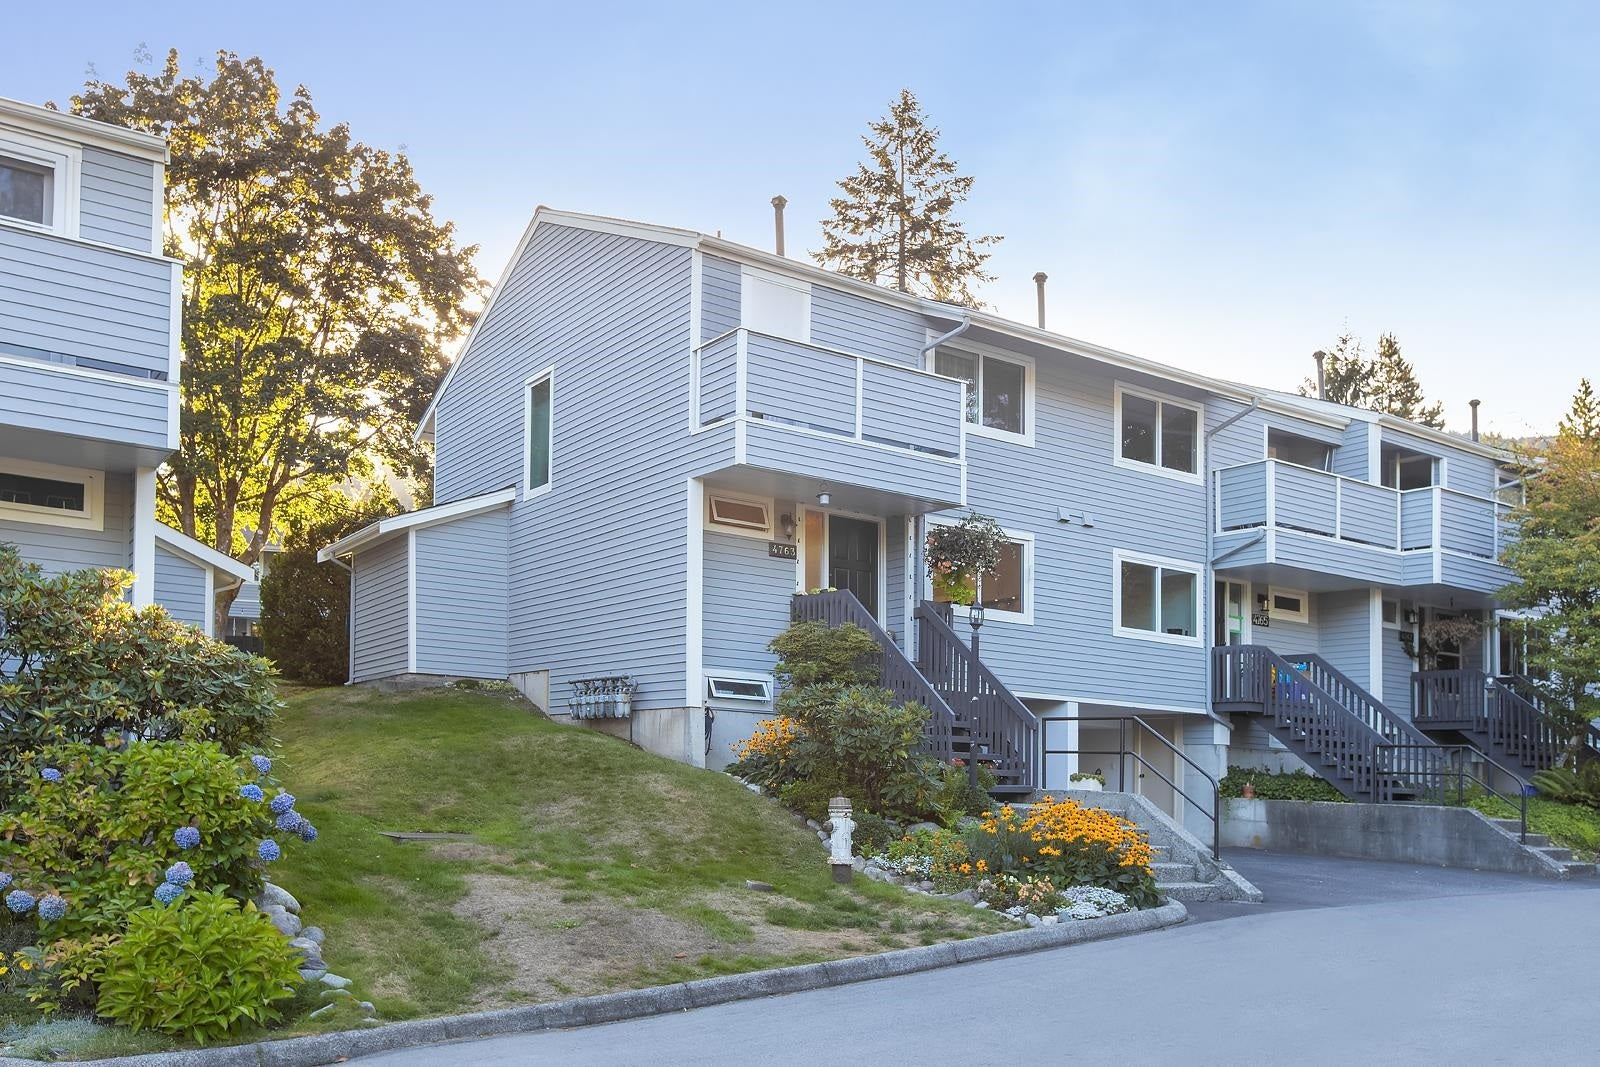 4763 HOSKINS ROAD - Lynn Valley Townhouse for sale, 3 Bedrooms (R2617725) - #1